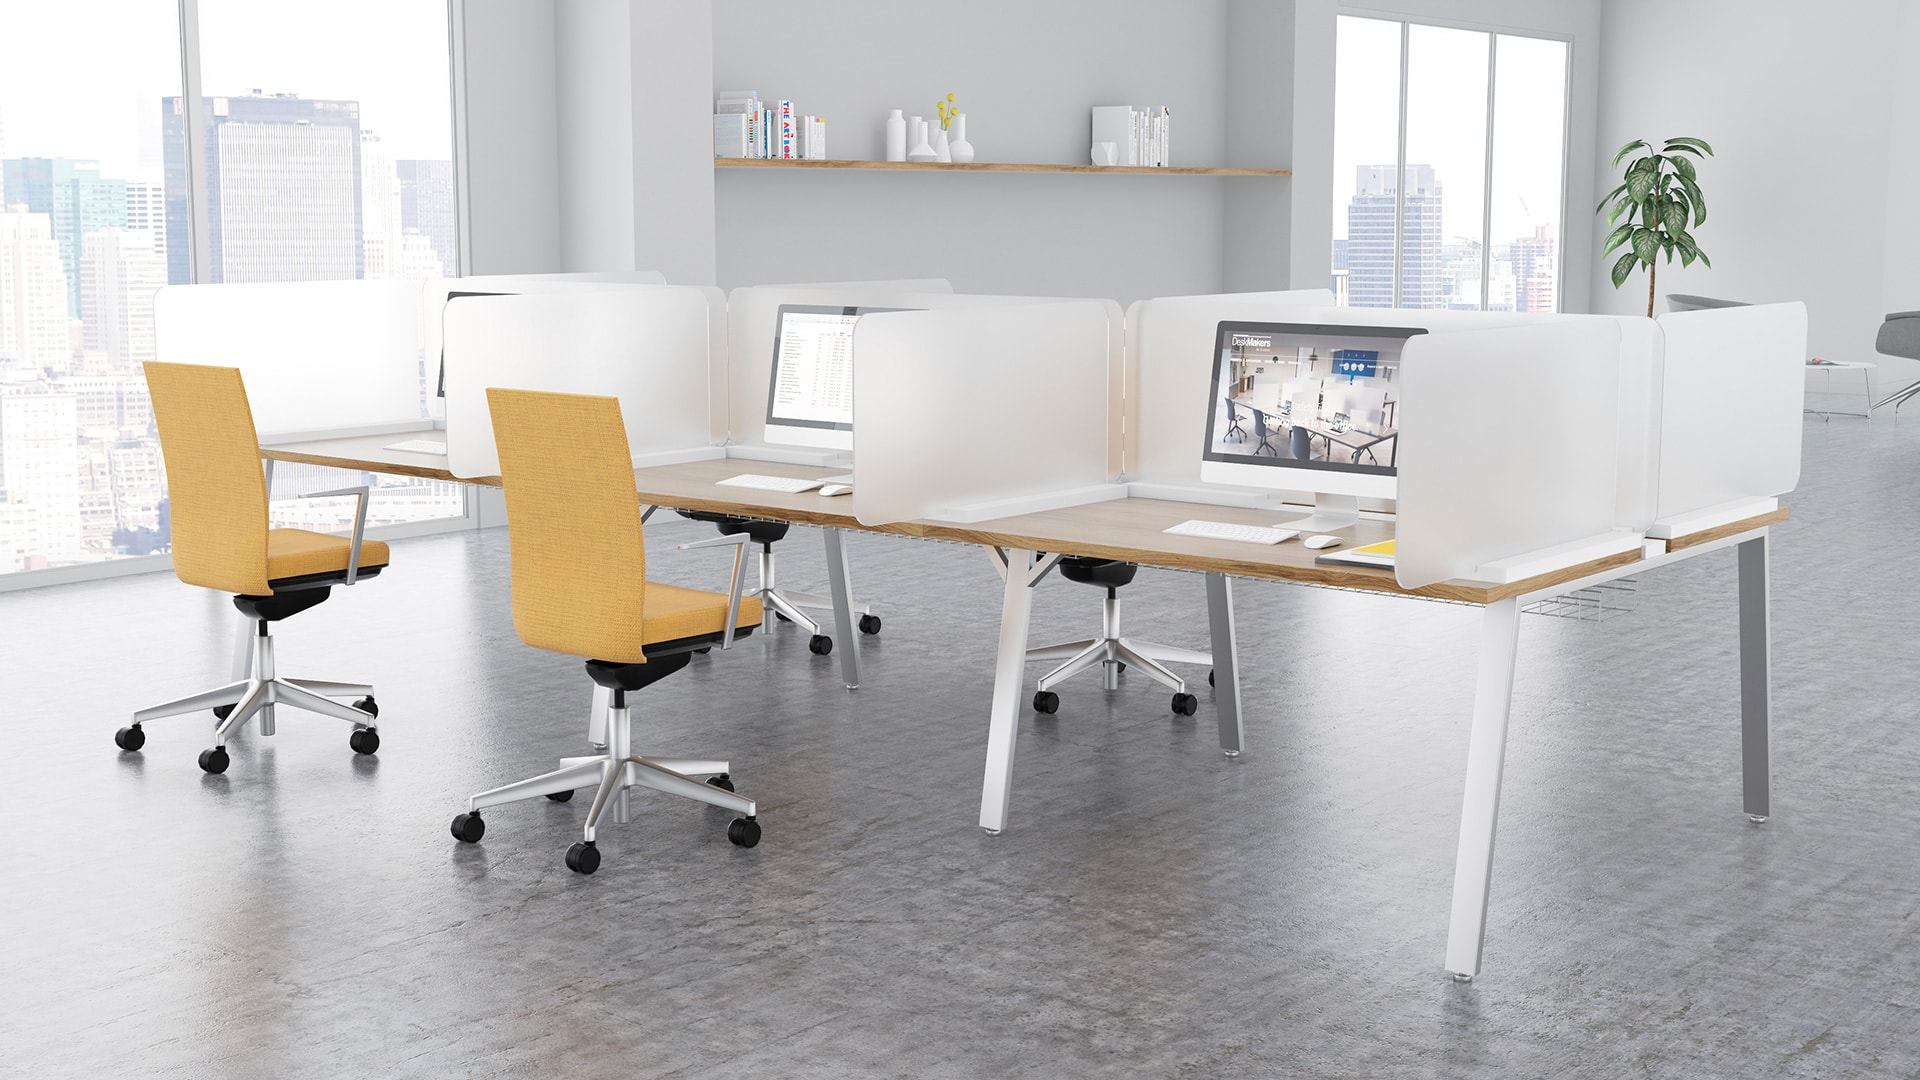 deskmakers-back-to-the-office-sheild-dividers